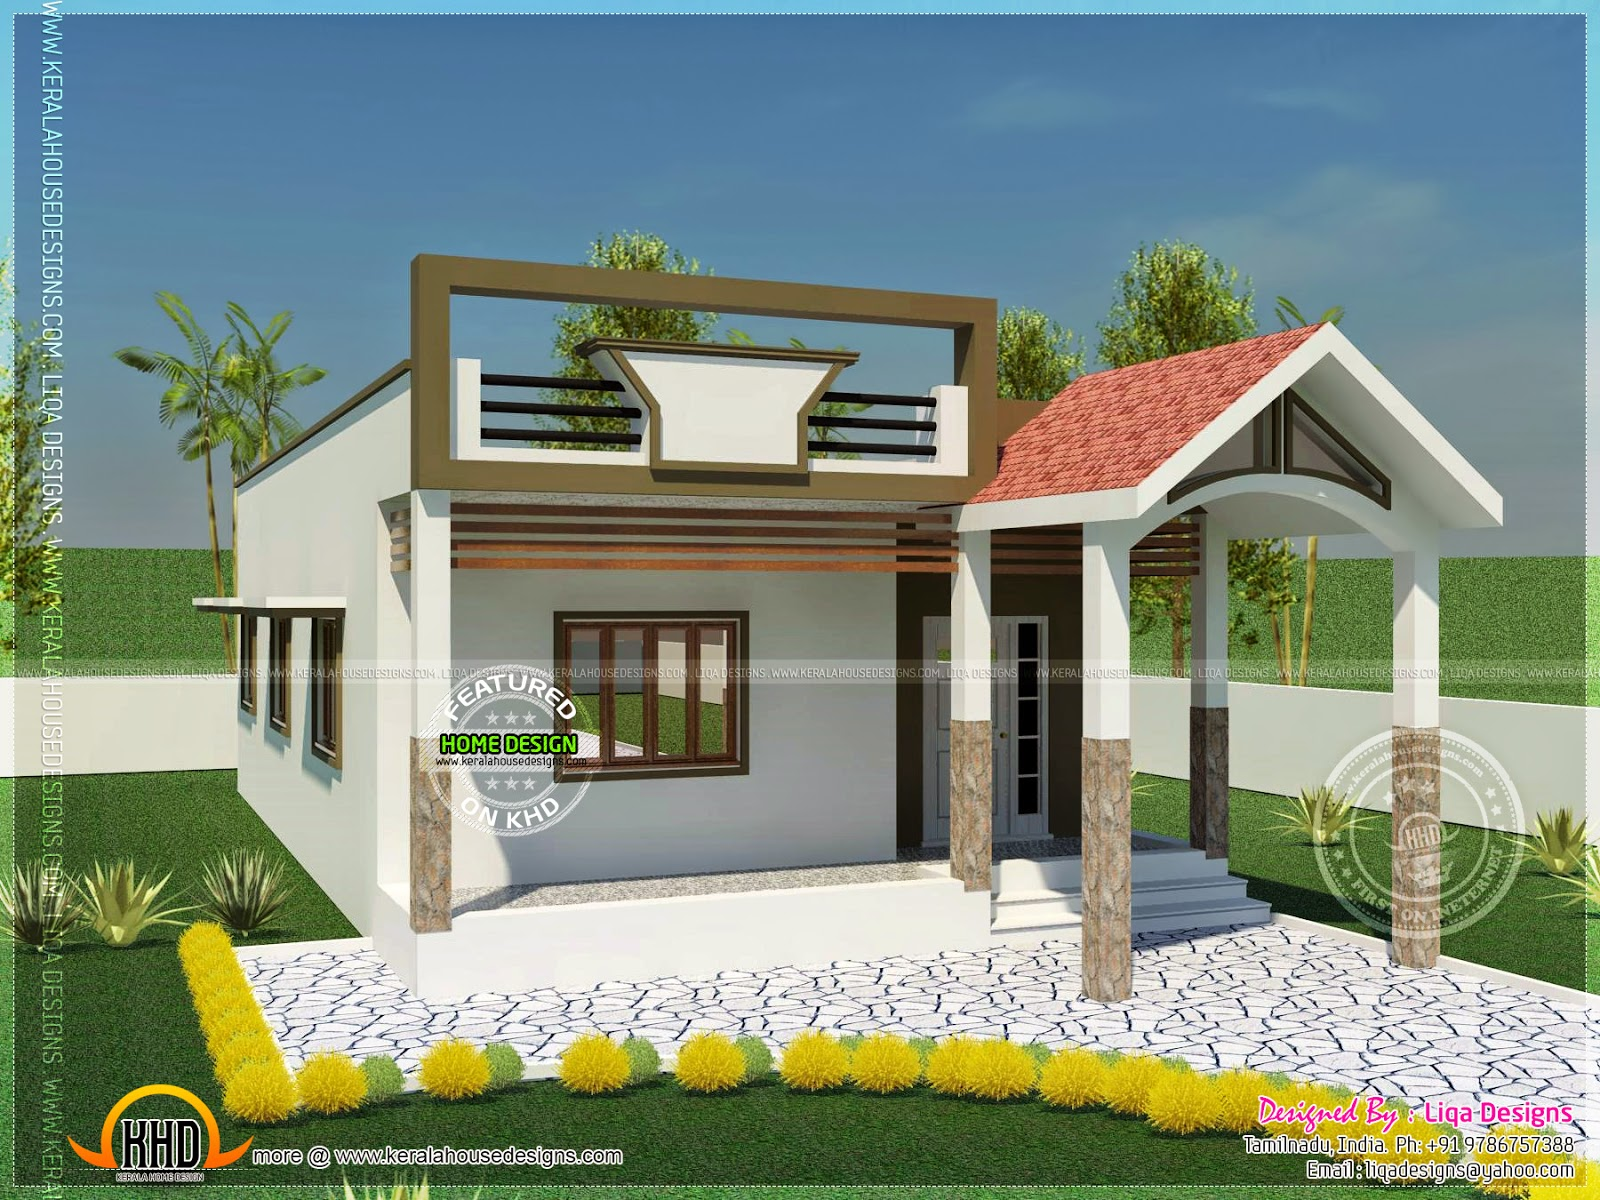 740 square feet single storied house kerala home design for Home models in tamilnadu pictures